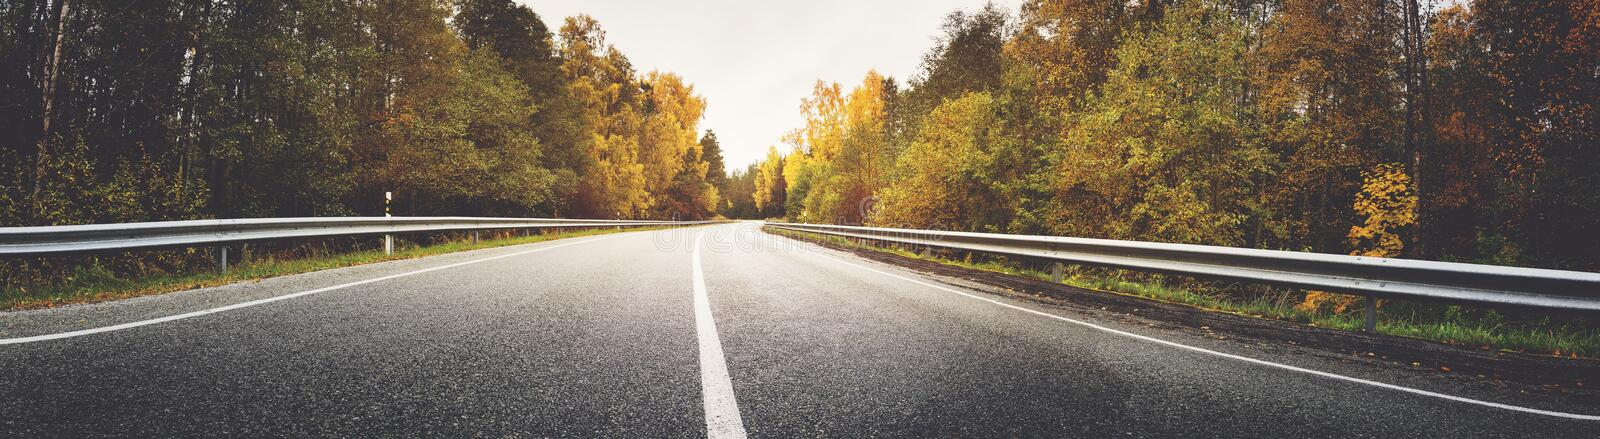 Alley in autumn. Asphalt road with beautiful trees on the sides in autumn stock photos